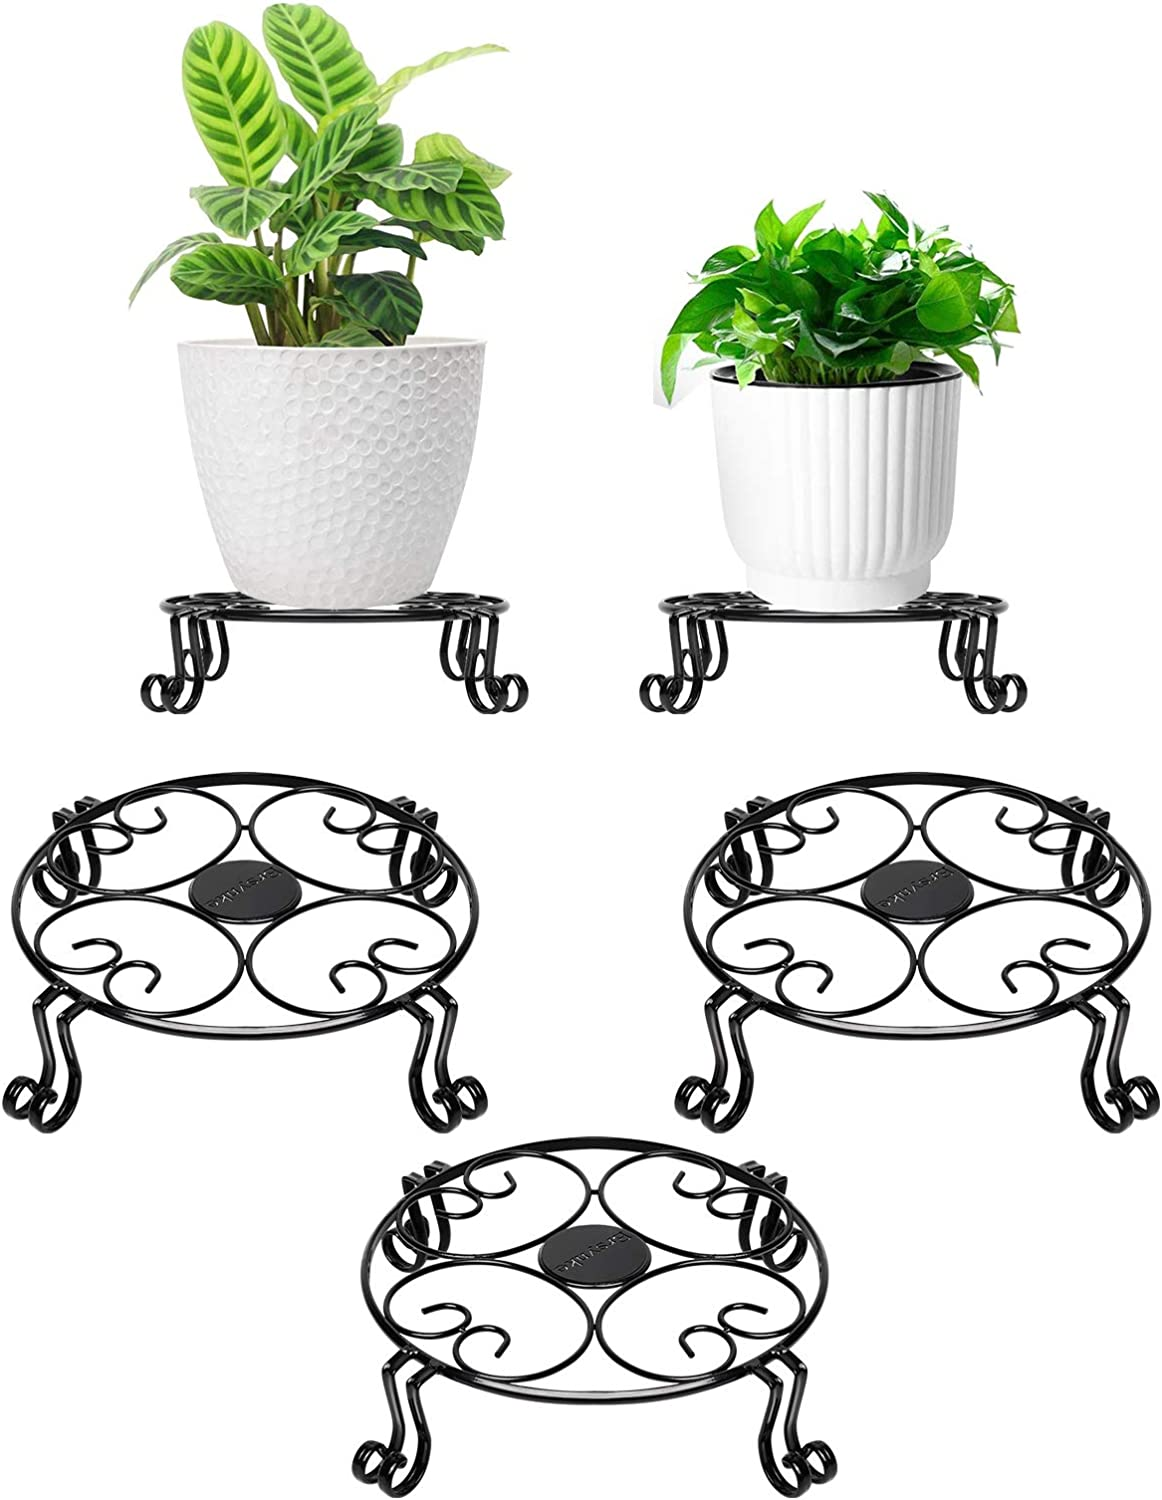 3 Pack Black Metal Plant Stands Rustproof Sturdy Potted Plant Stand Indoor Outdoor Decorative Round Plant Stands for Home & Garden Plant Flowerpot Holder 11.8 Inches (Plant Pot Not Include)